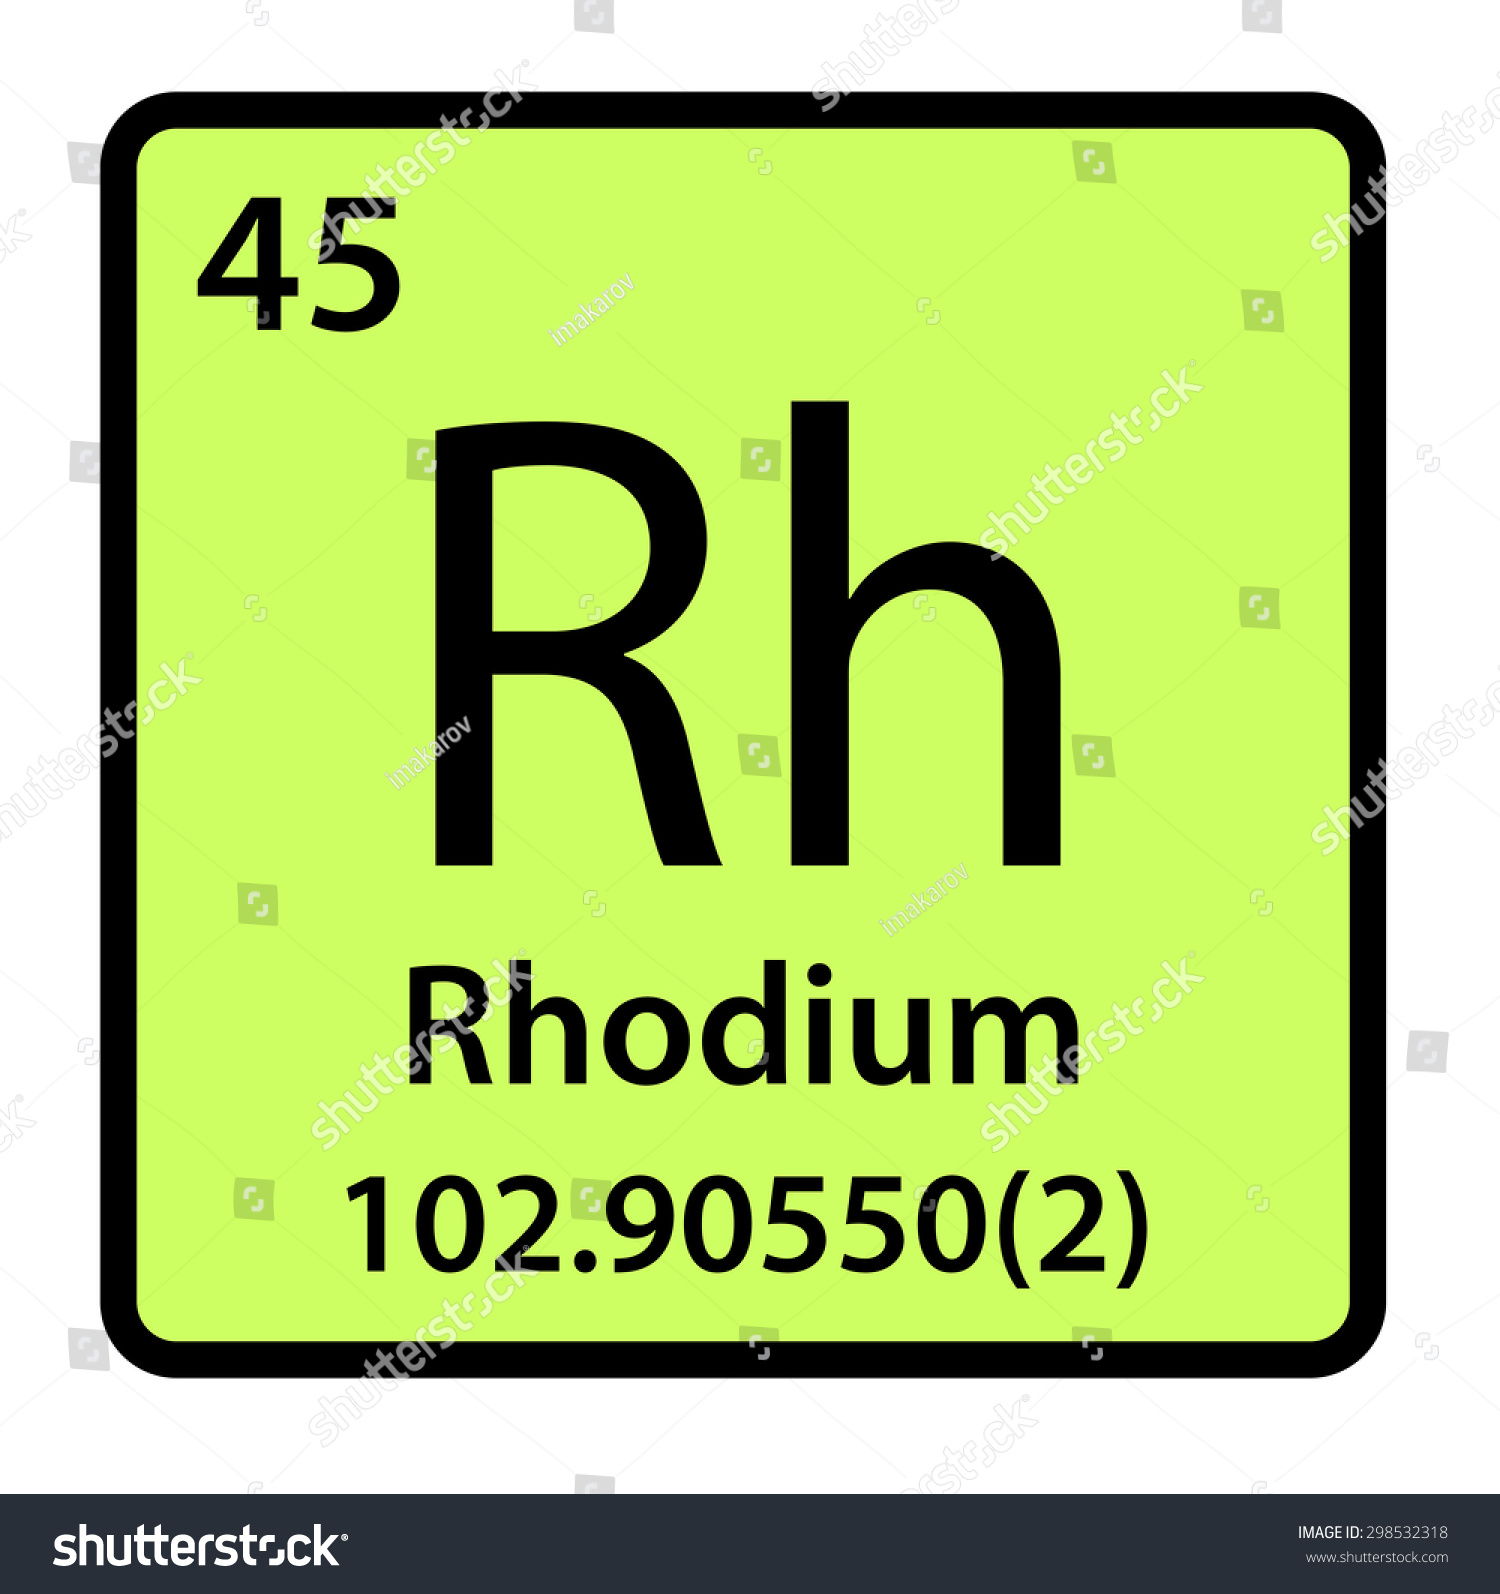 Element rhodium periodic table stock illustration 298532318 element rhodium of the periodic table gamestrikefo Image collections